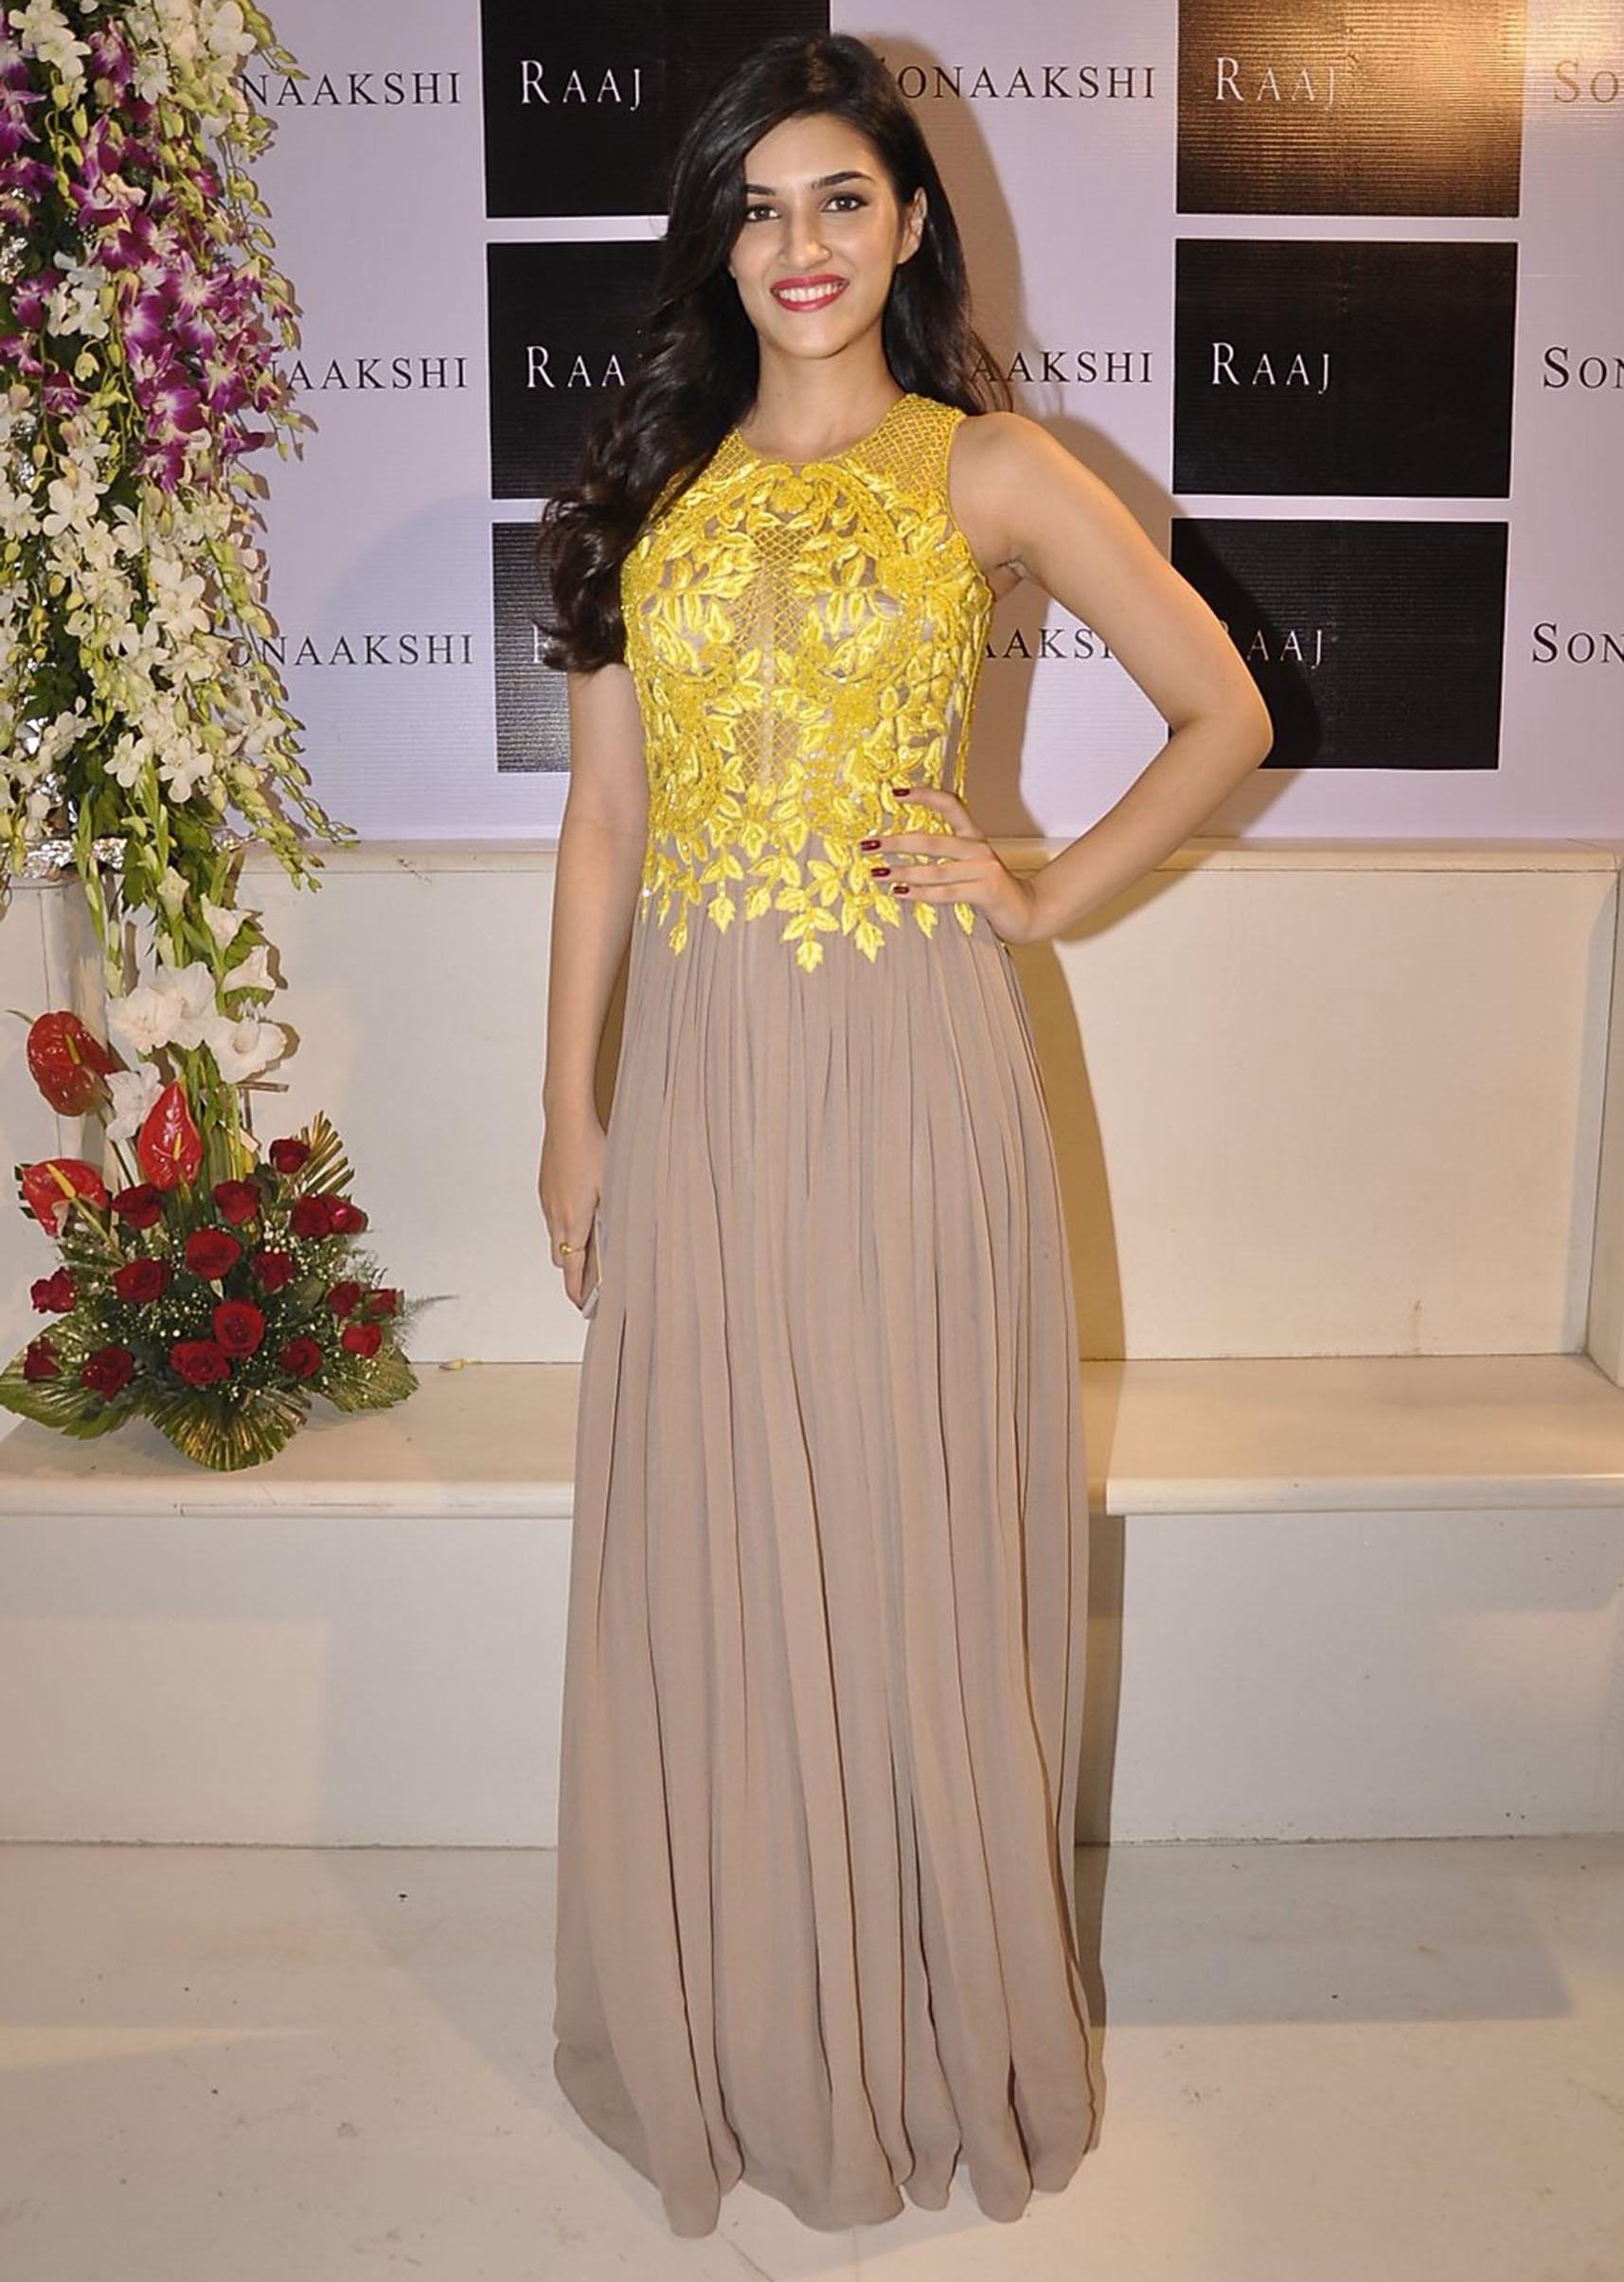 868aff91f2 Kriti Sanon was seen in a Sonaakshi Raaj's beige gown with yellow  embellishment at her new store launch.